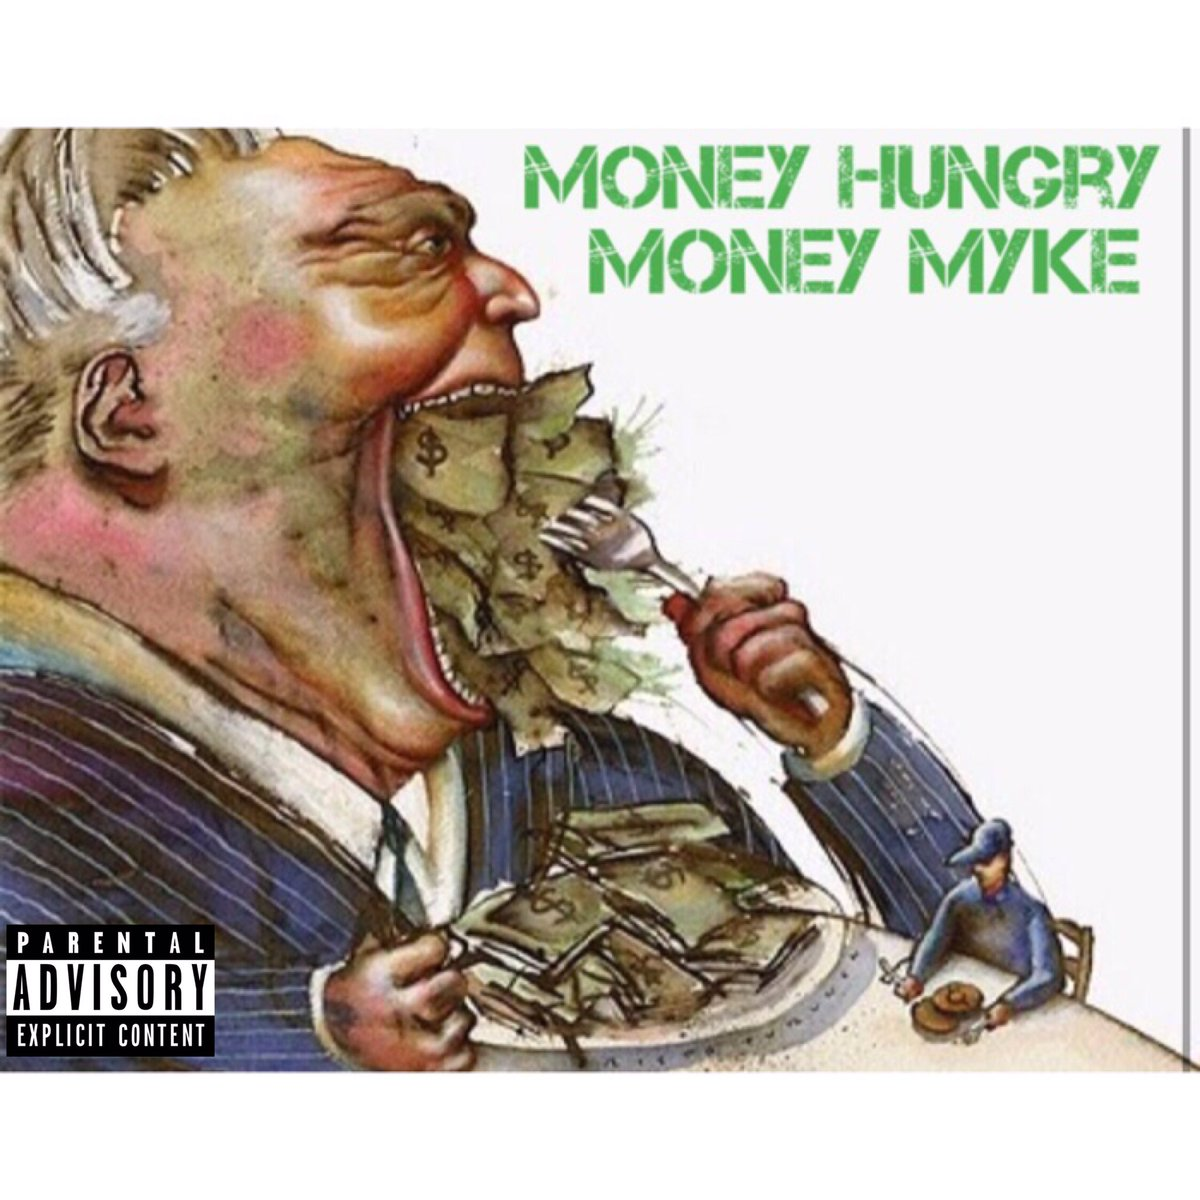 MONEY HUNGRY OUT NOW #OgMob #RealLife® https://soundcloud.com/money_myke/sets/money-hungry-ep…